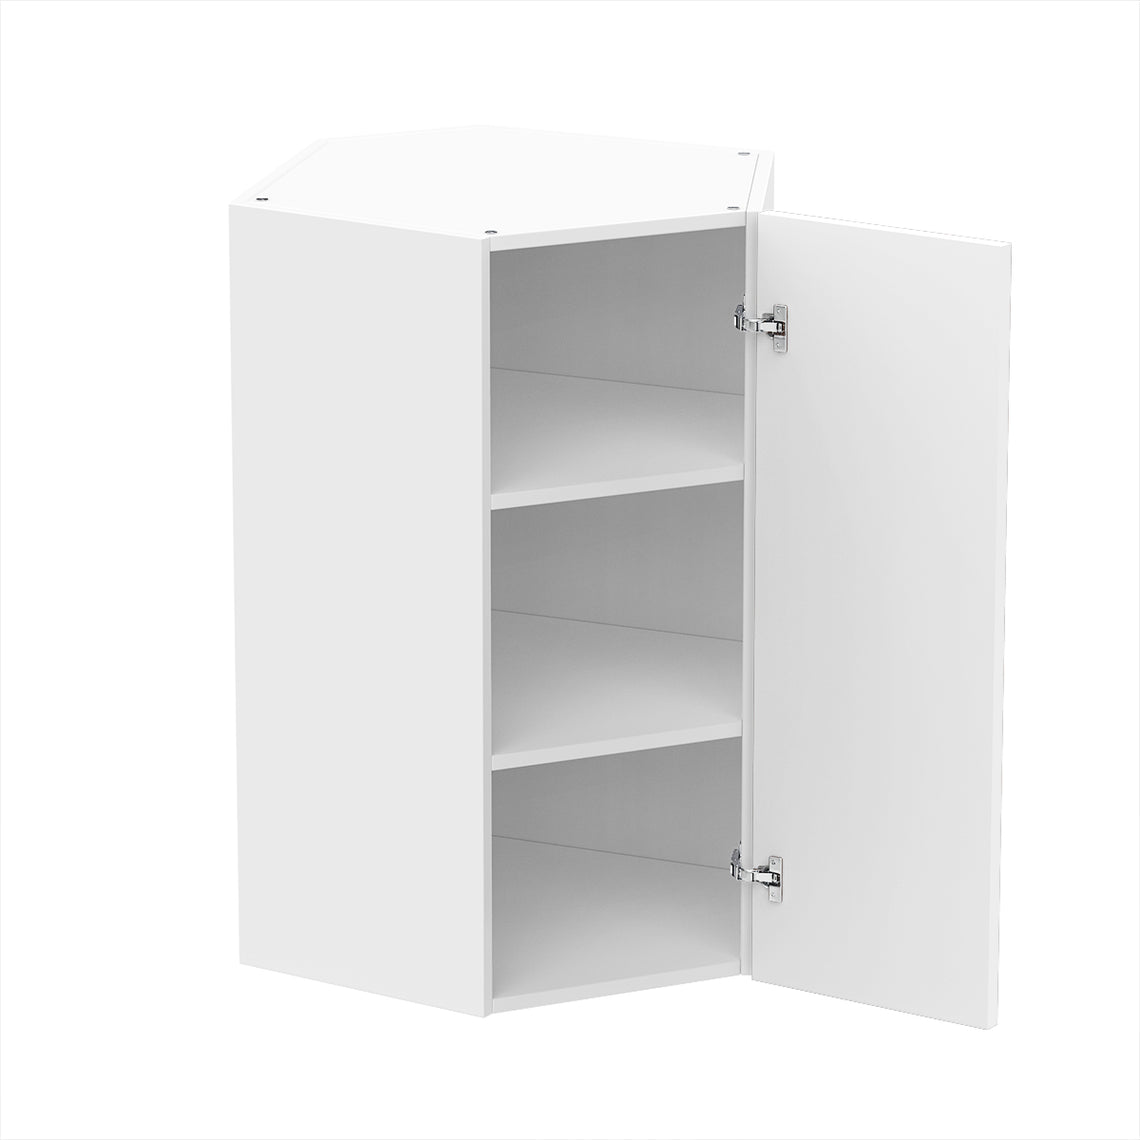 Glossy White Diagonal Corner Wall Cabinet 24